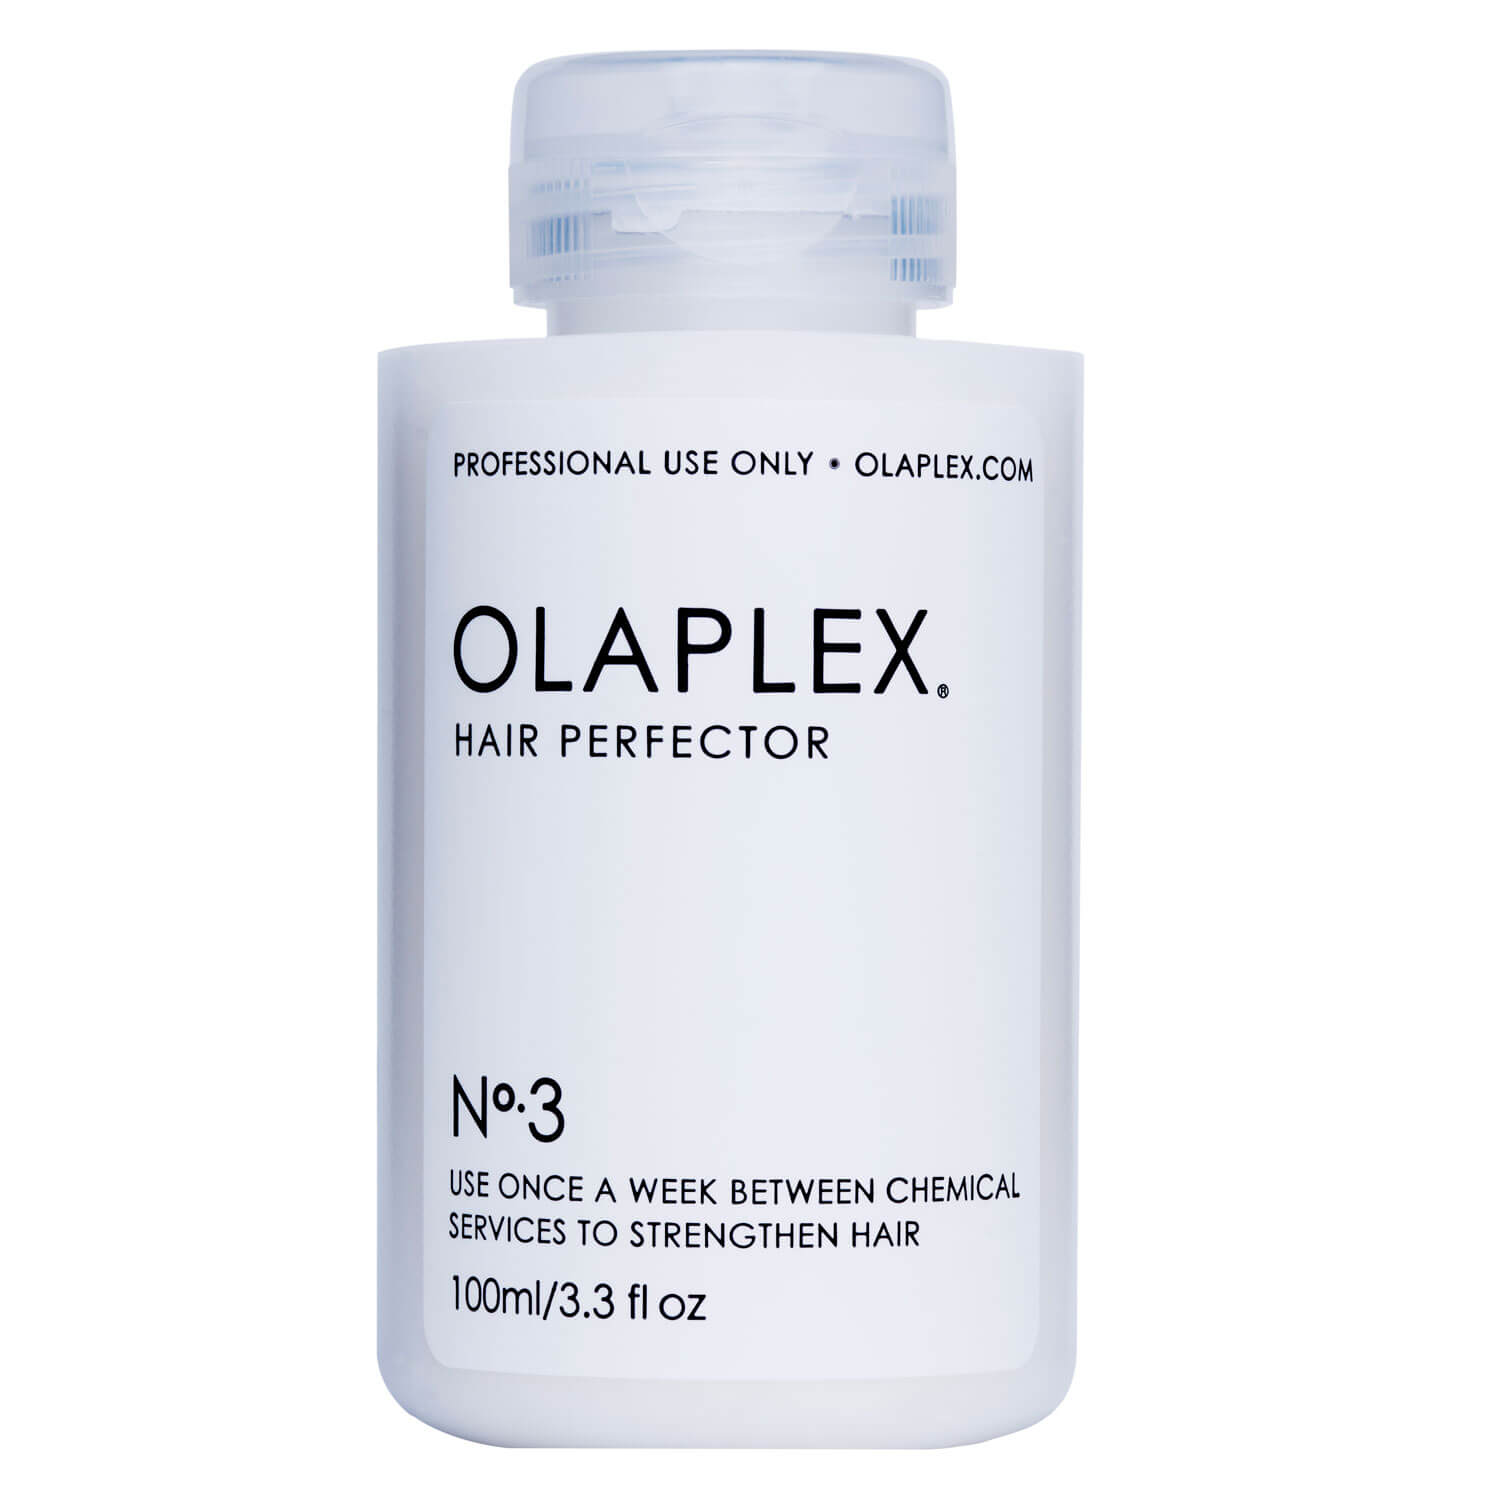 Olaplex - Hair Perfector No. 3 - 100ml